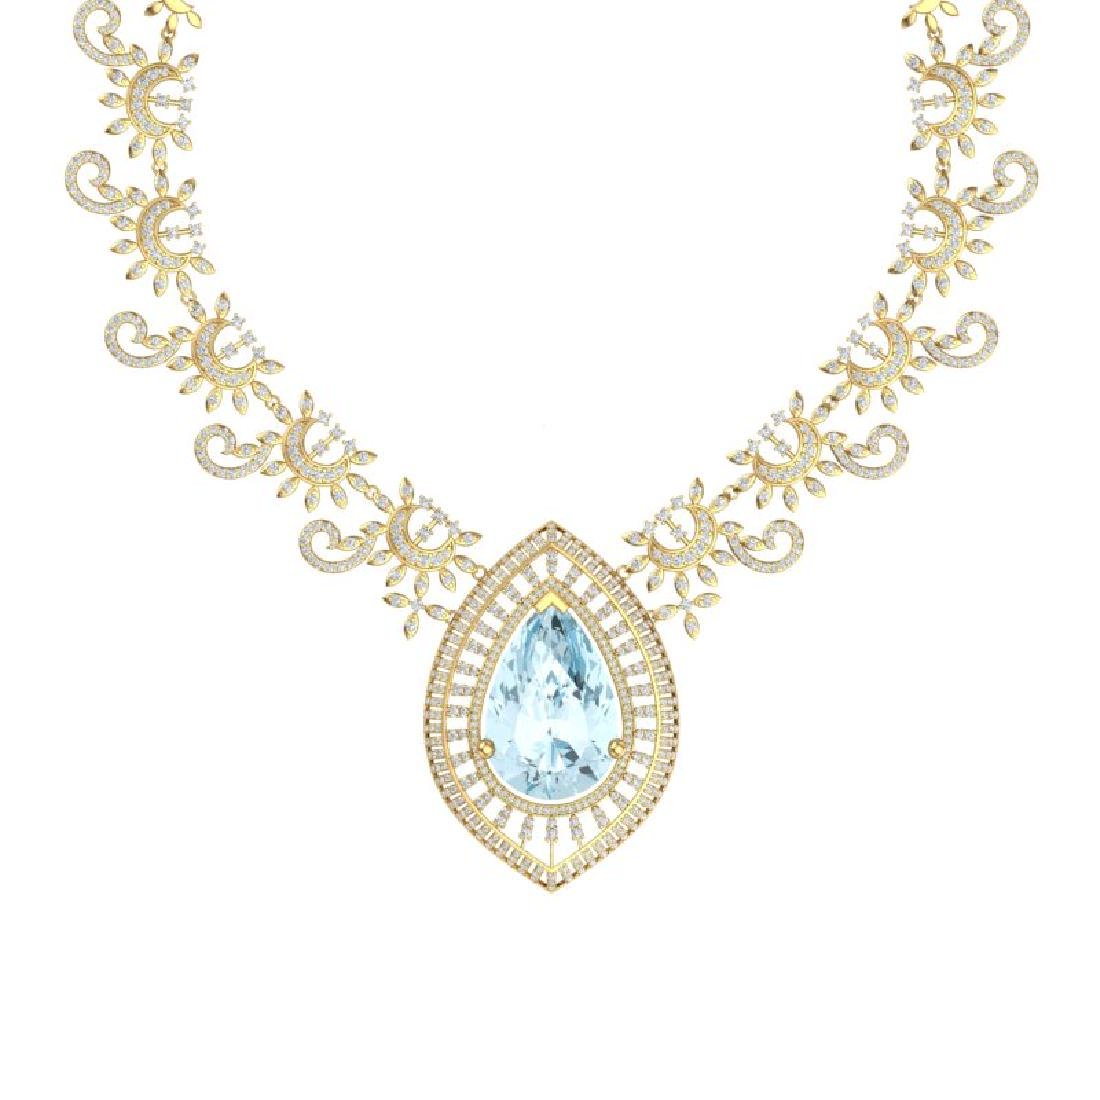 68.1 CTW Royalty Sky Topaz & VS Diamond Necklace 18K - 2